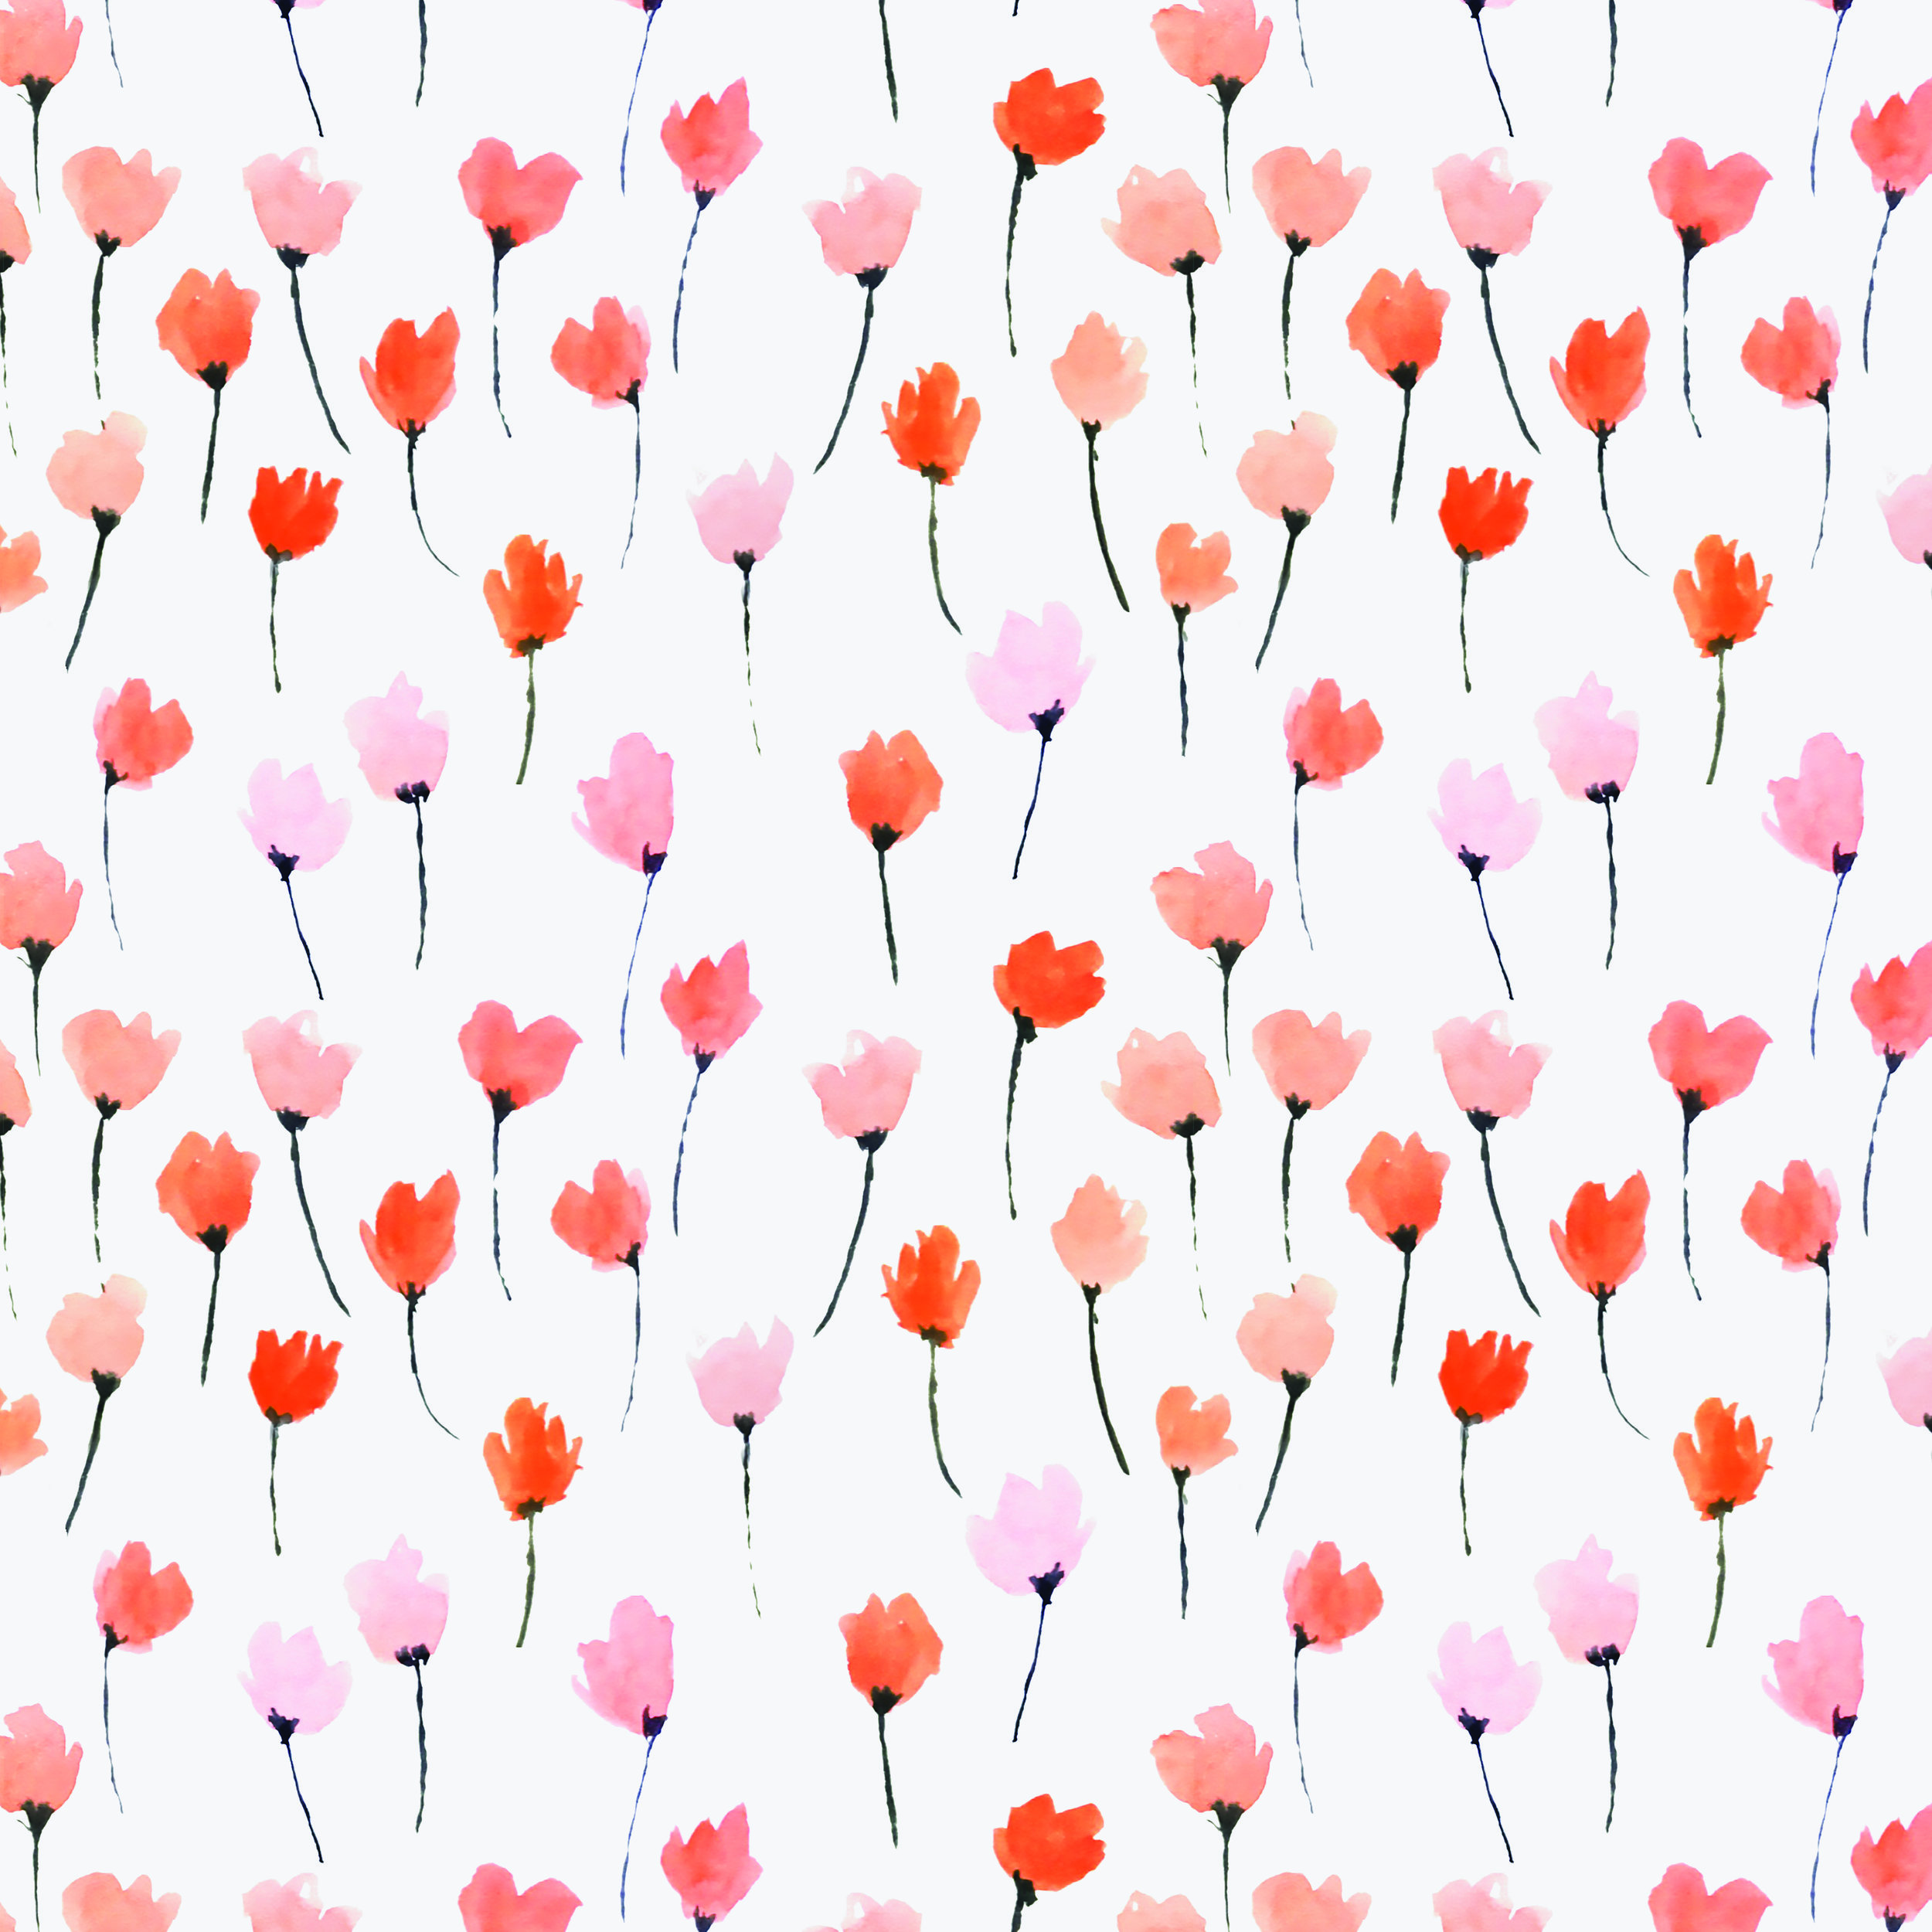 poppies_repeat_color1_2016.jpg